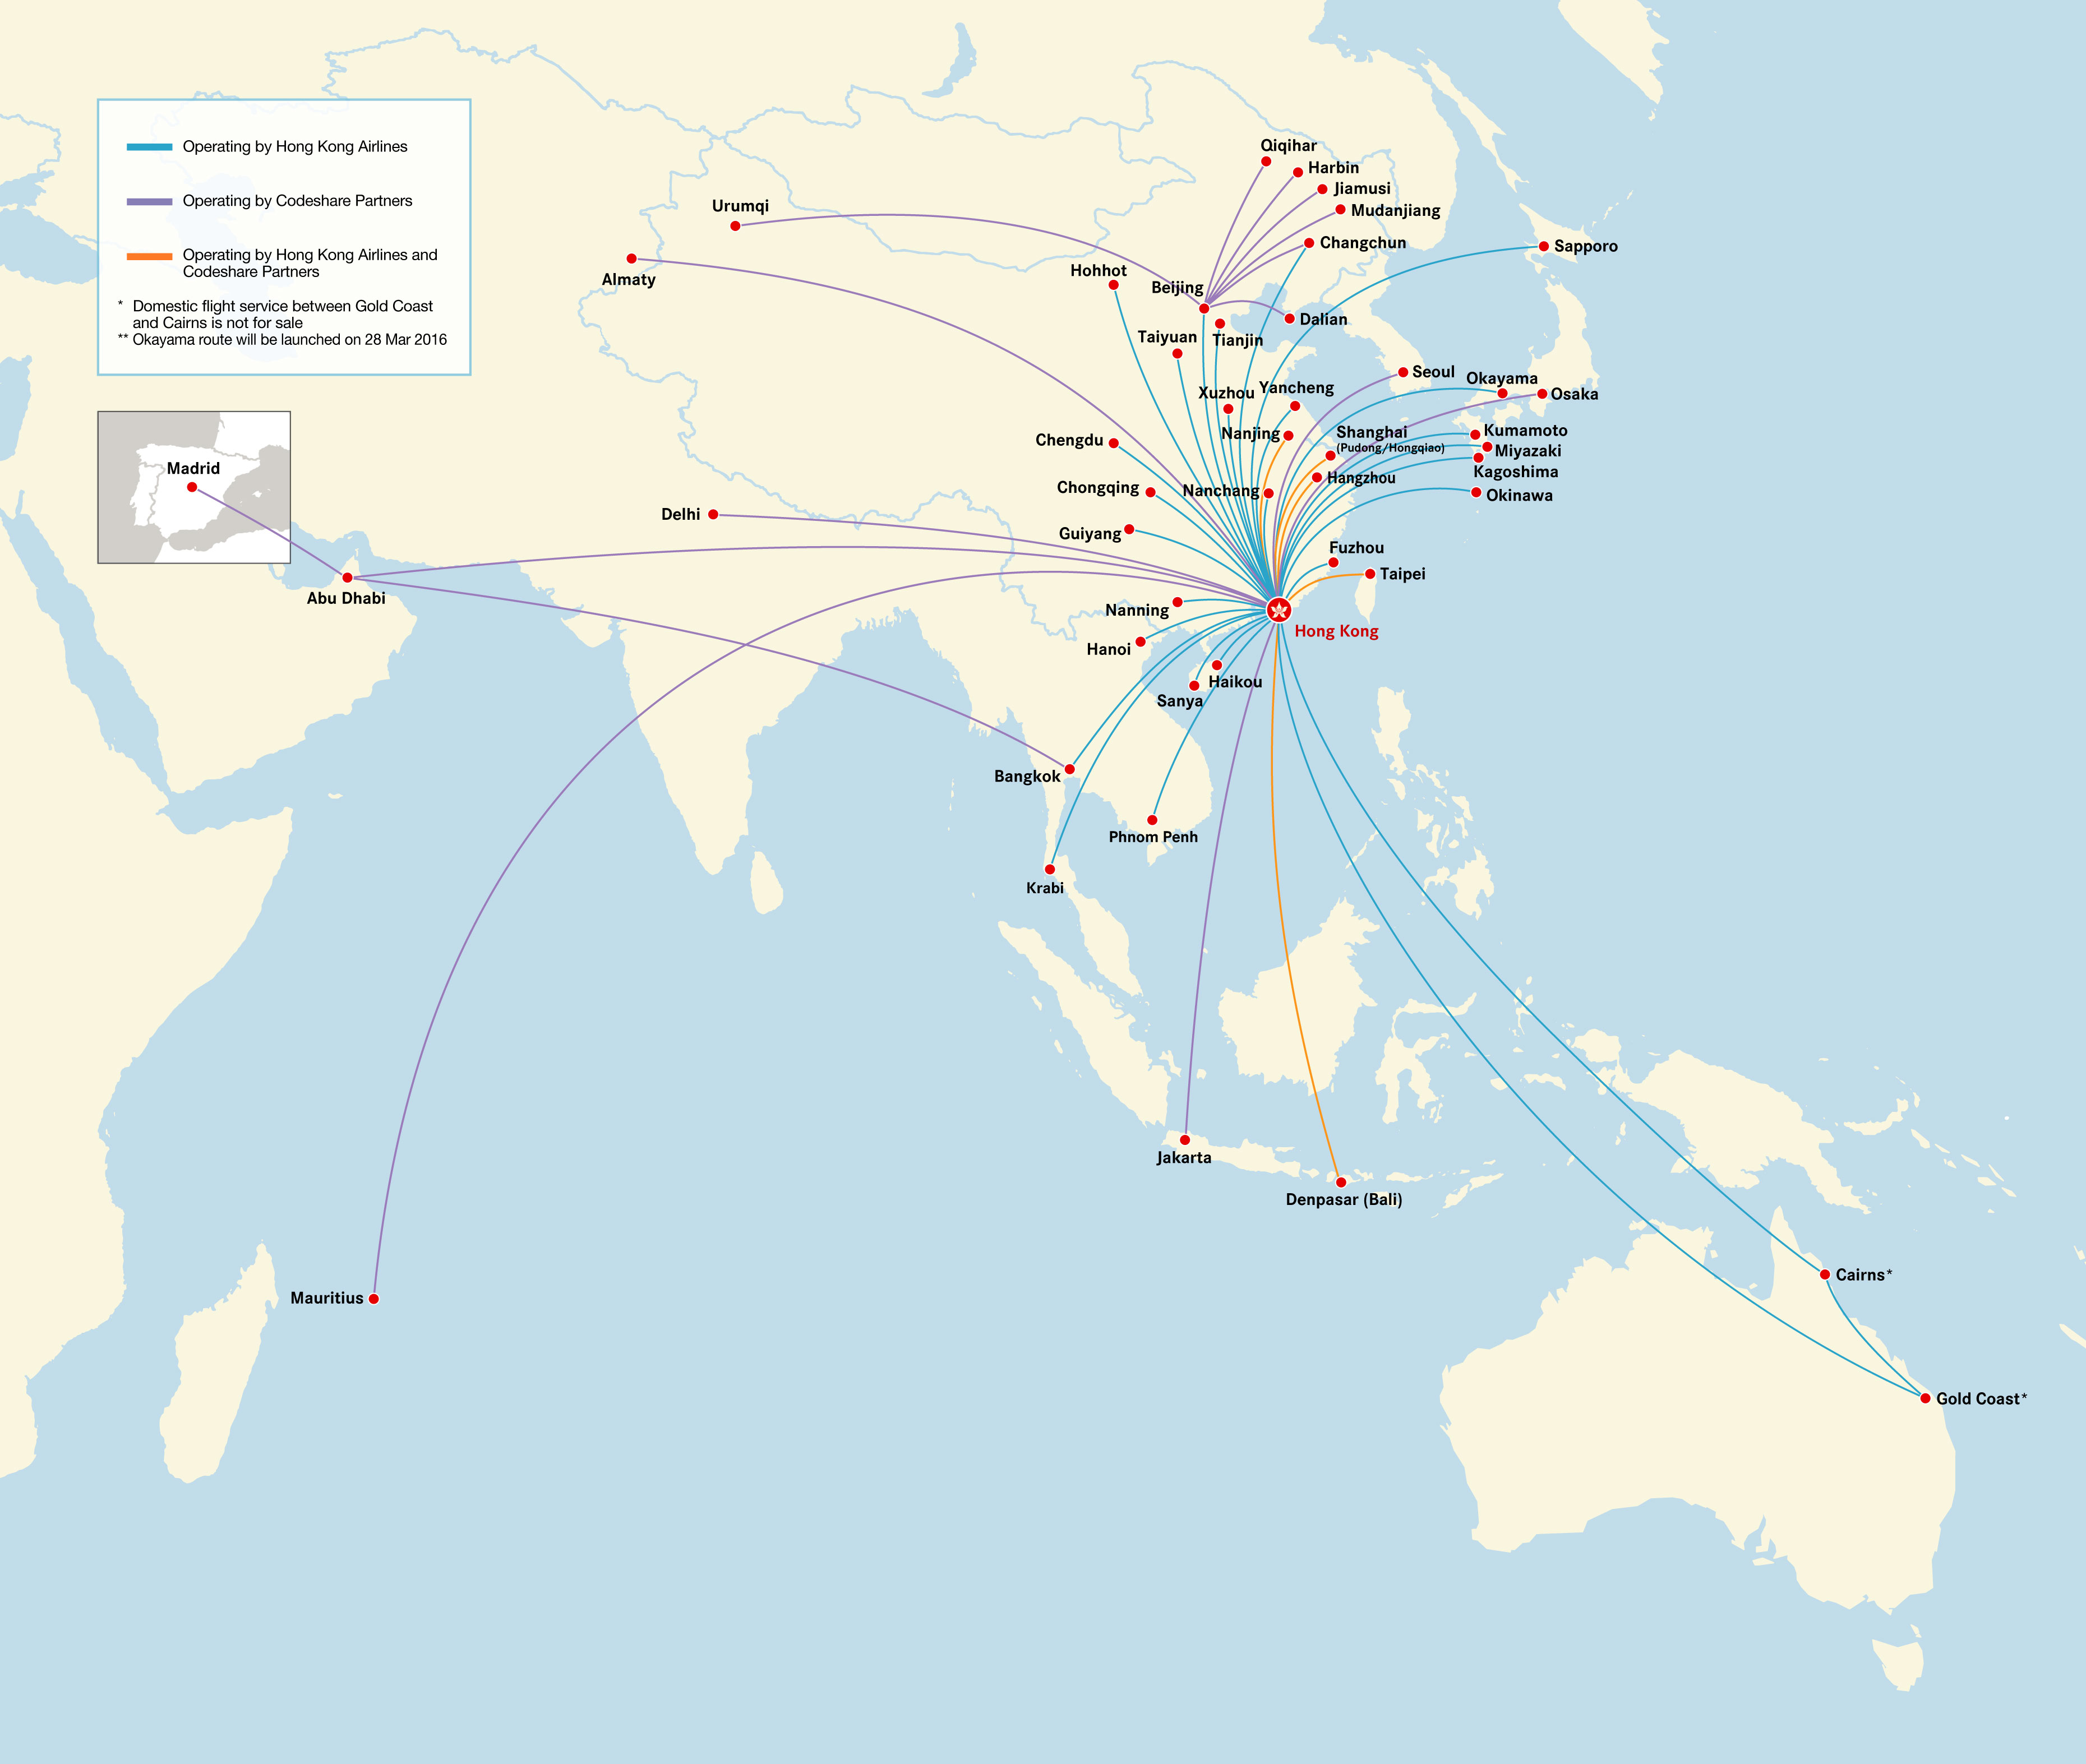 Hong Kong Airlines current routes